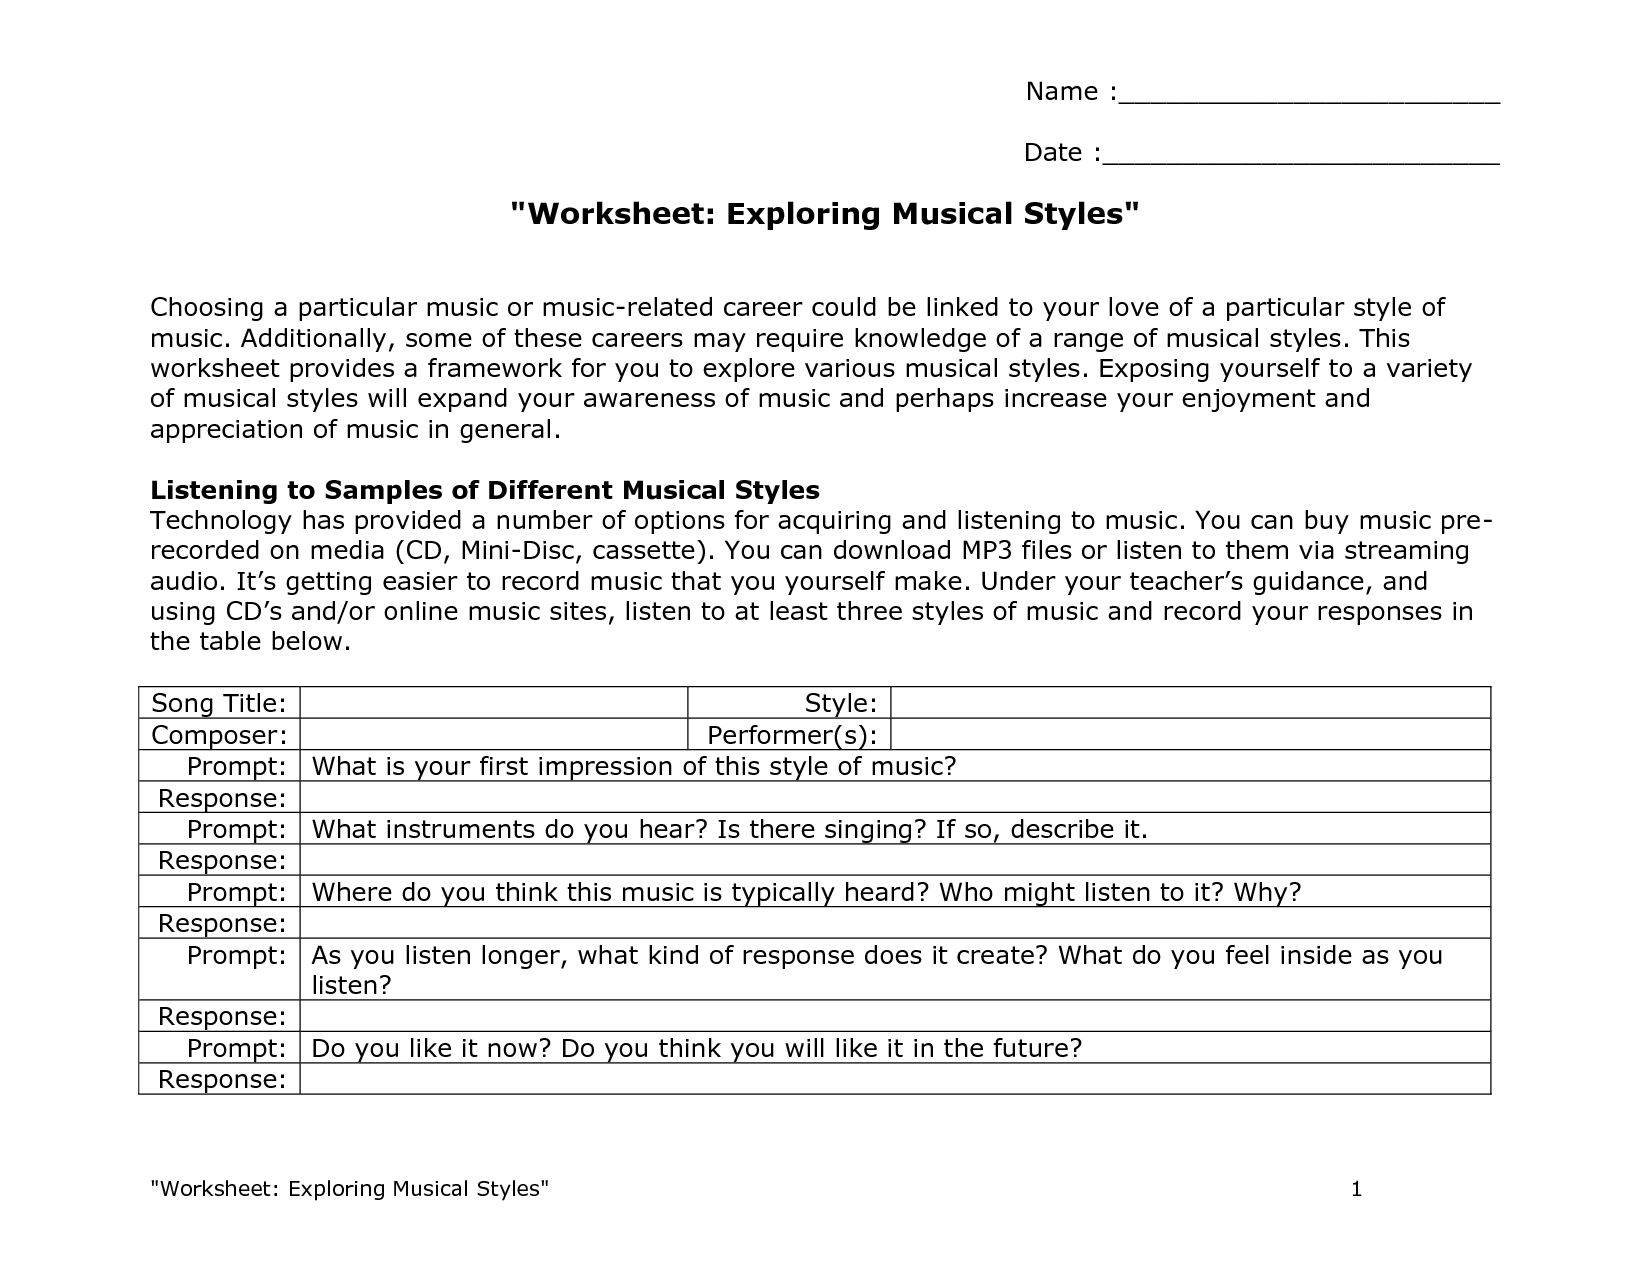 Worksheets Genre Worksheets music genre worksheets worksheet exploring musical styles styles